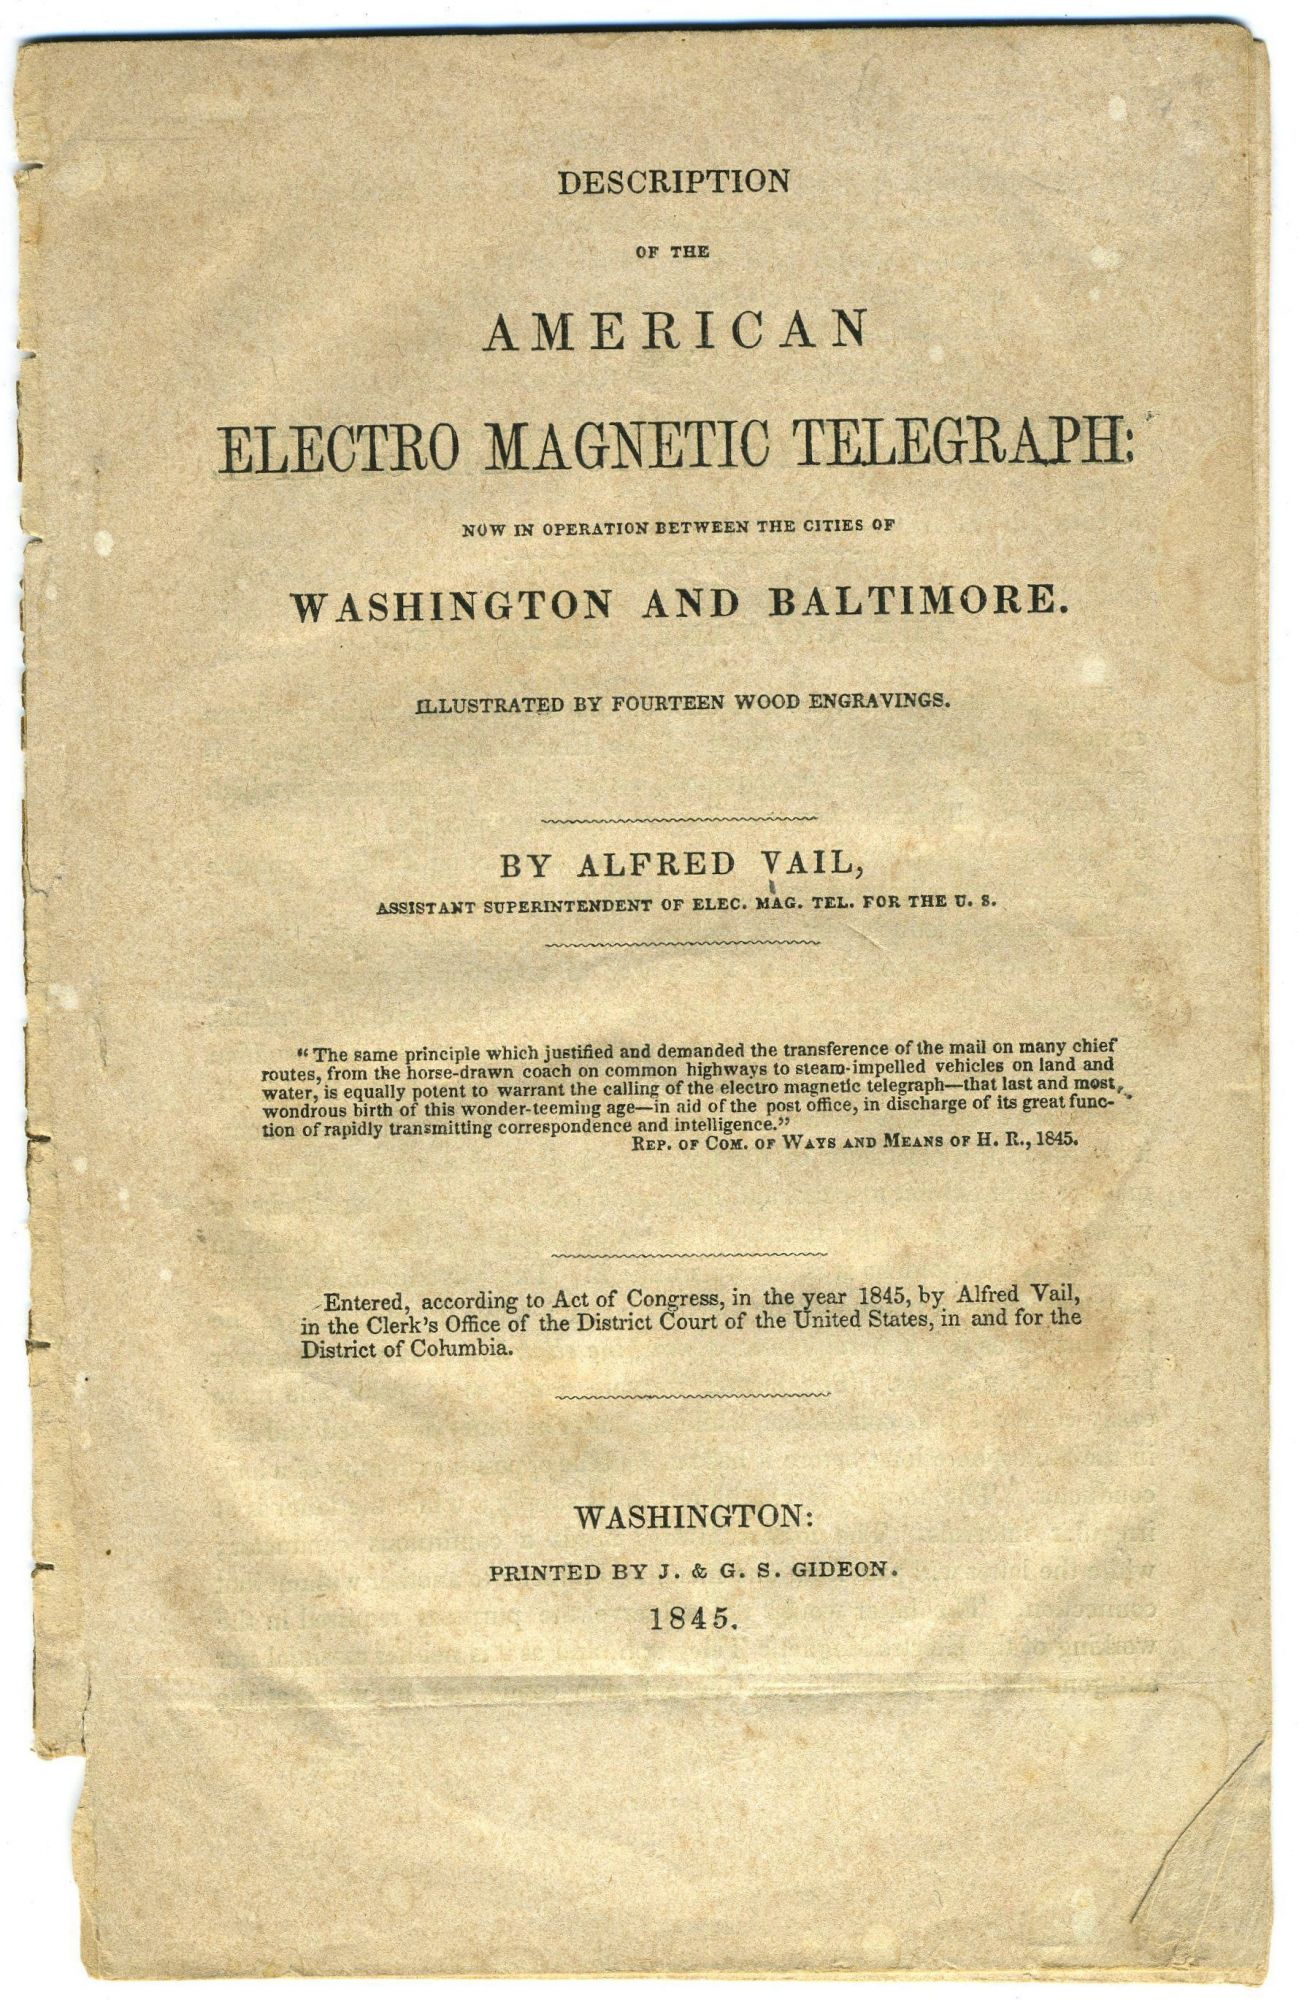 Description of the American Electro Magnetic Telegraph : Now in Operation between the Cities of Washington and Baltimore. Illustrated by Fourteen Wood Engravings. Alfred Vail.